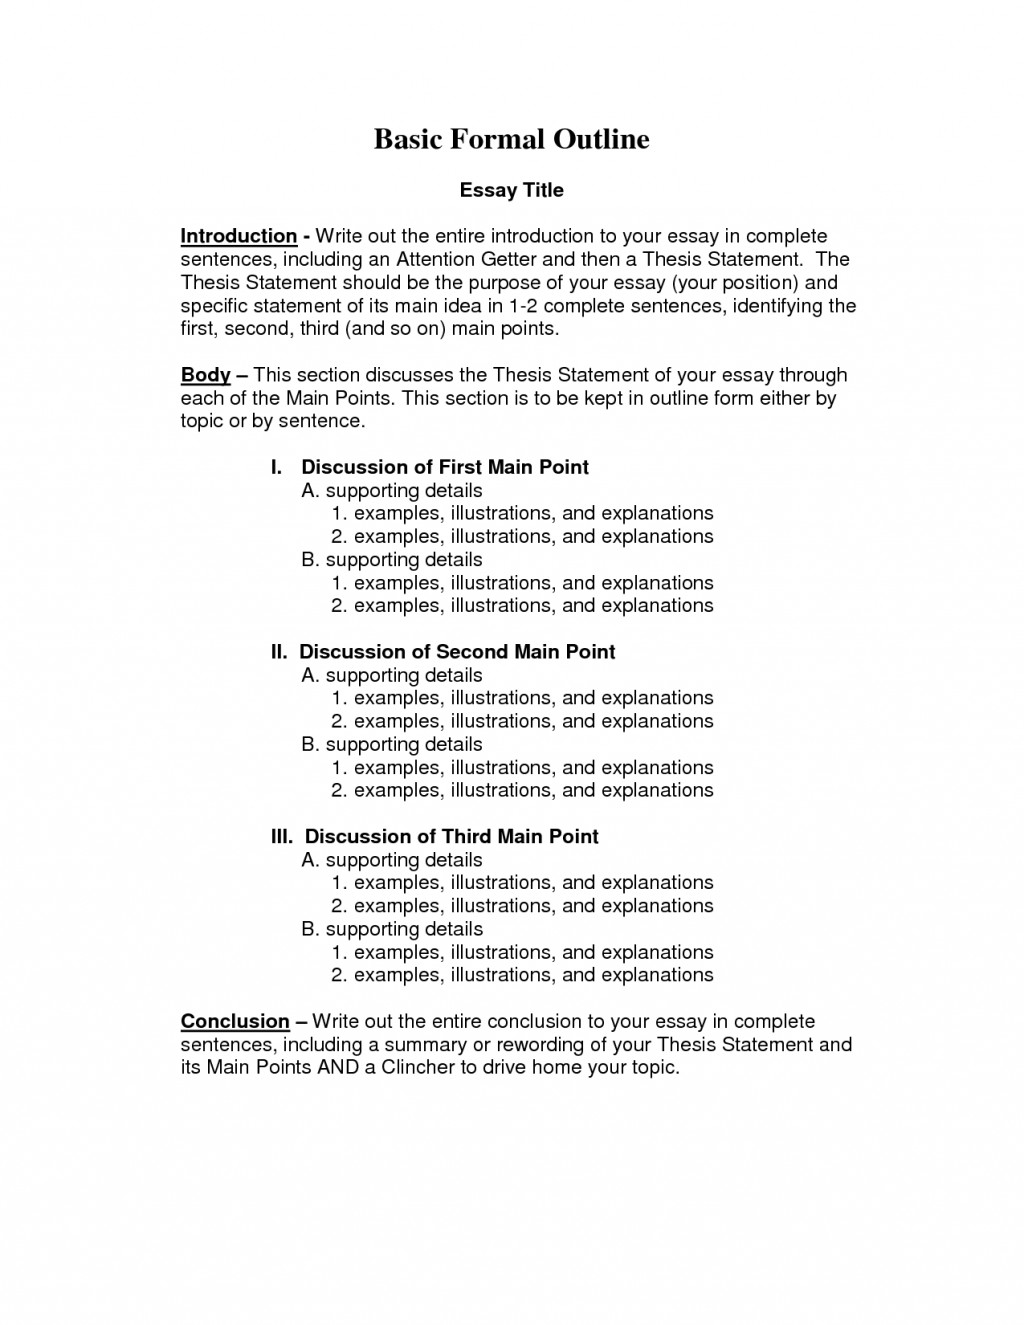 009 Essay Example Apply Texas Examples Formal Introduction Format Researchaper Help Tkpaperpbgo Outline 4 An For College Writing With Argument Good Dreaded B Prompt C Prompts Large